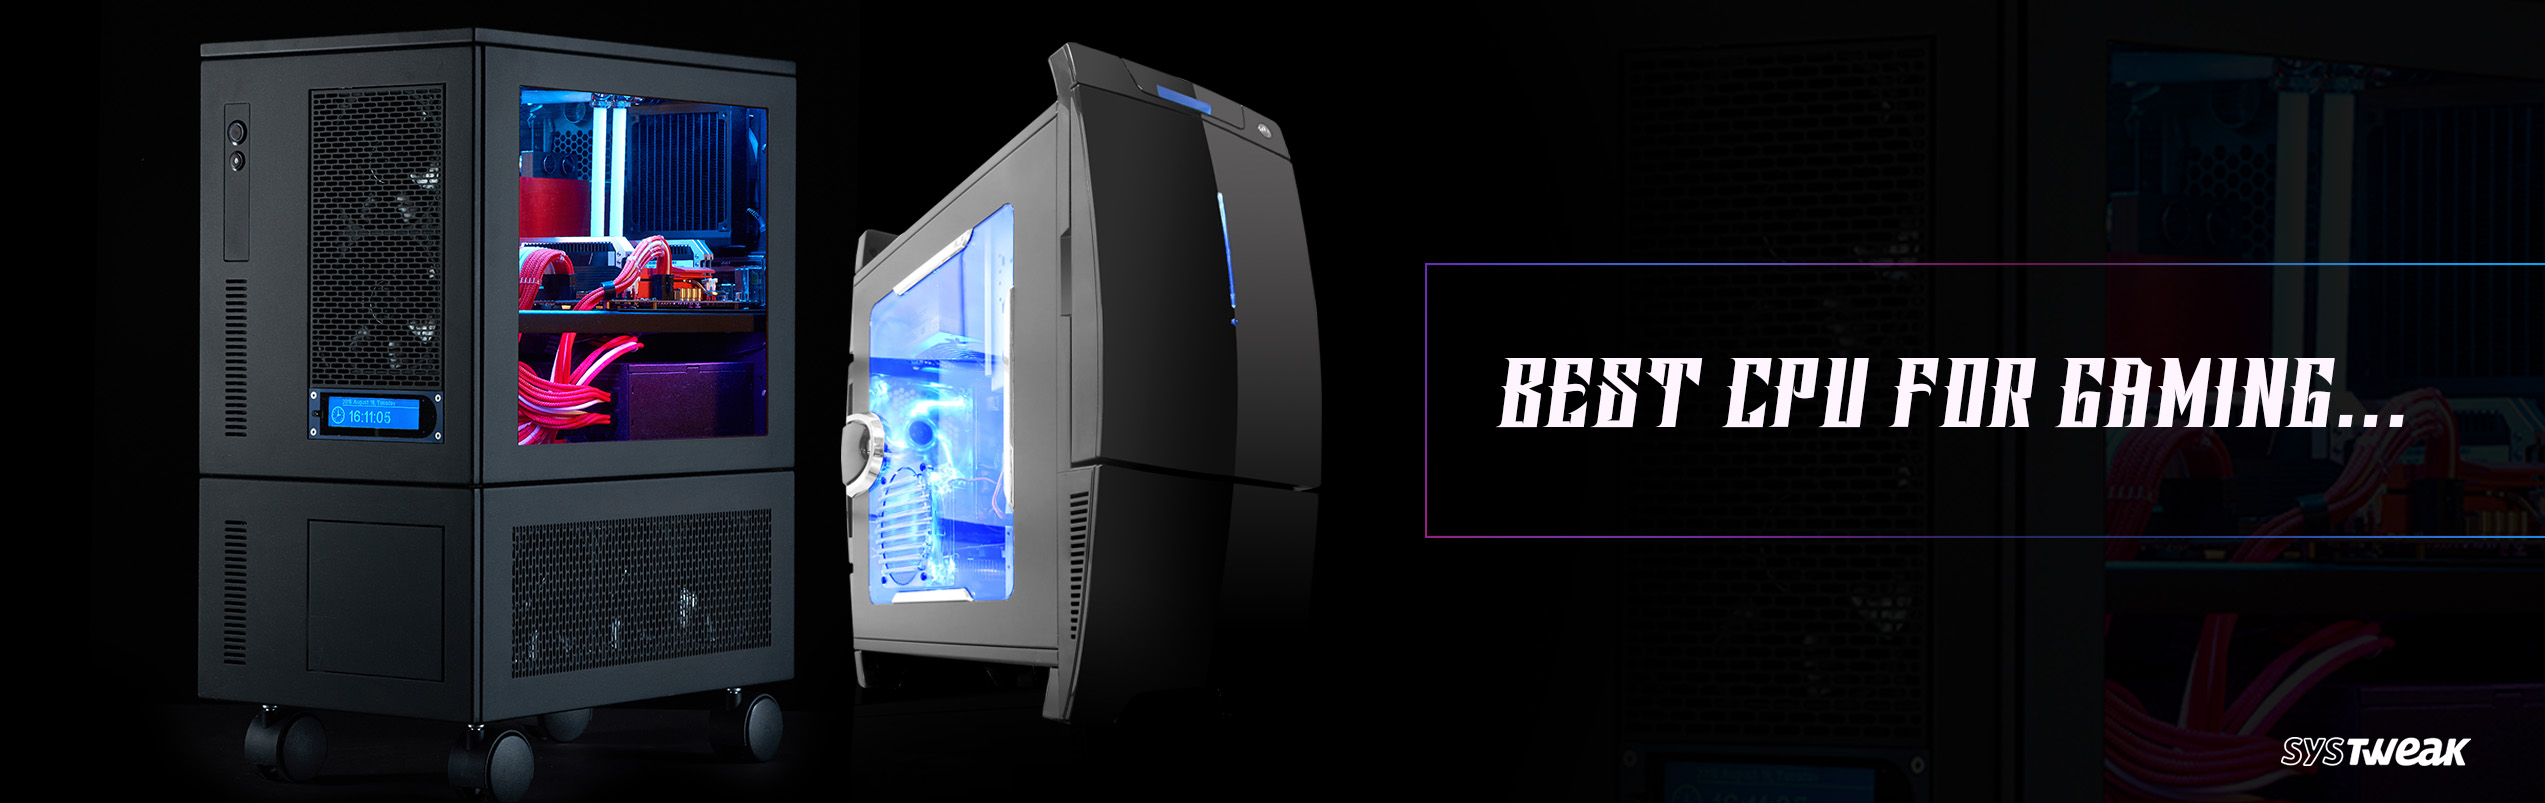 Best Gaming CPU To Build A Budget Gaming PC